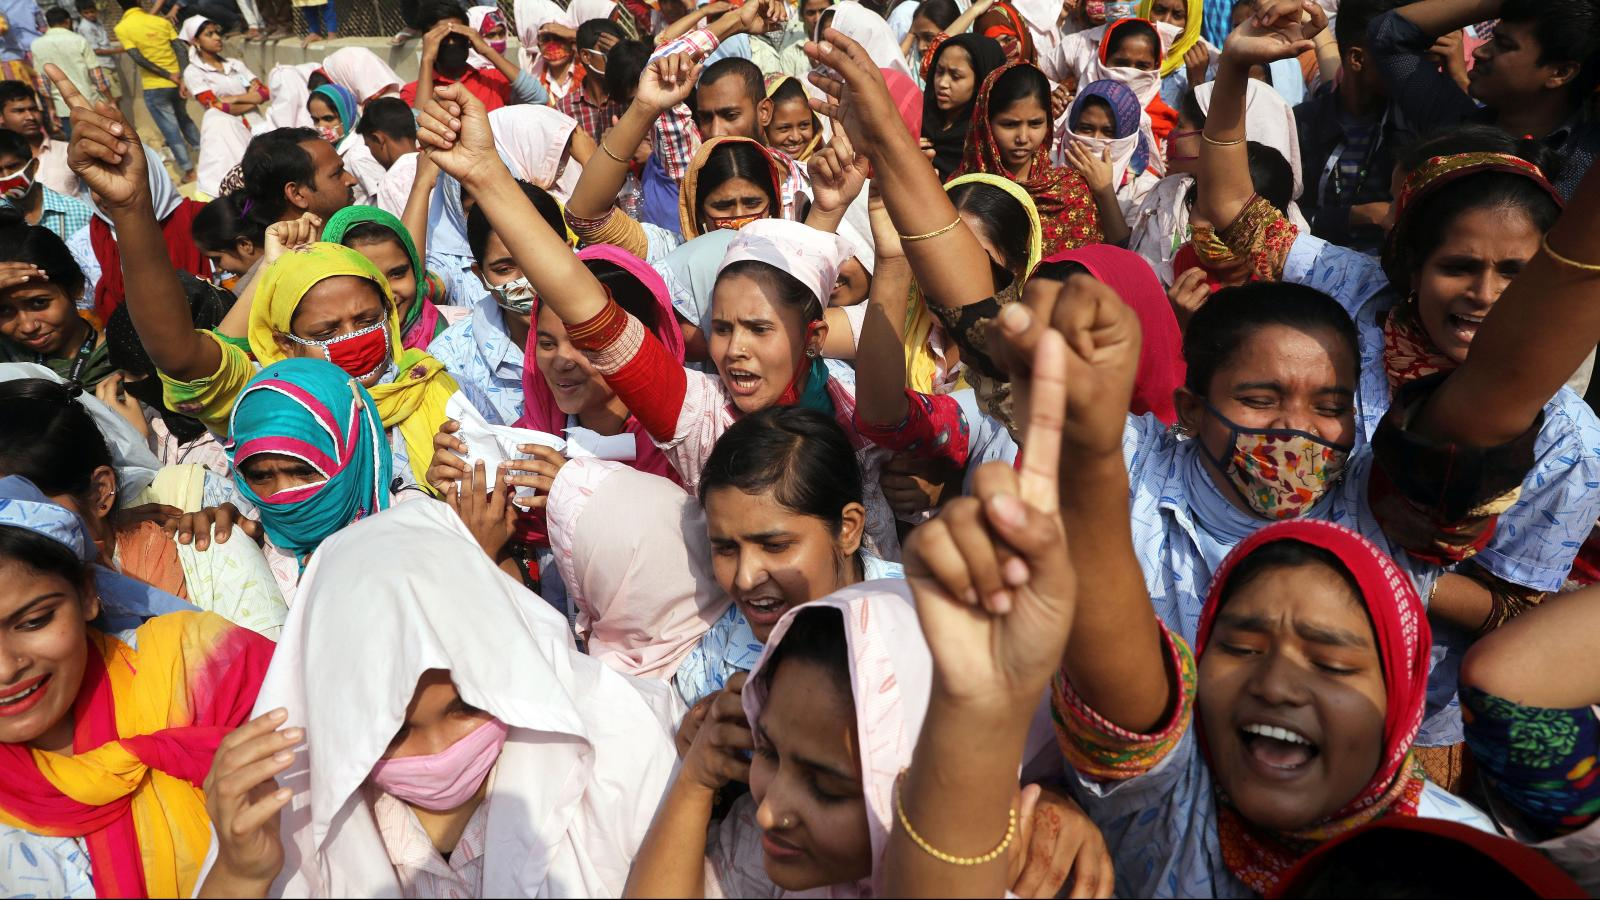 5,000 garment workers in Bangladesh were fired after protesting low